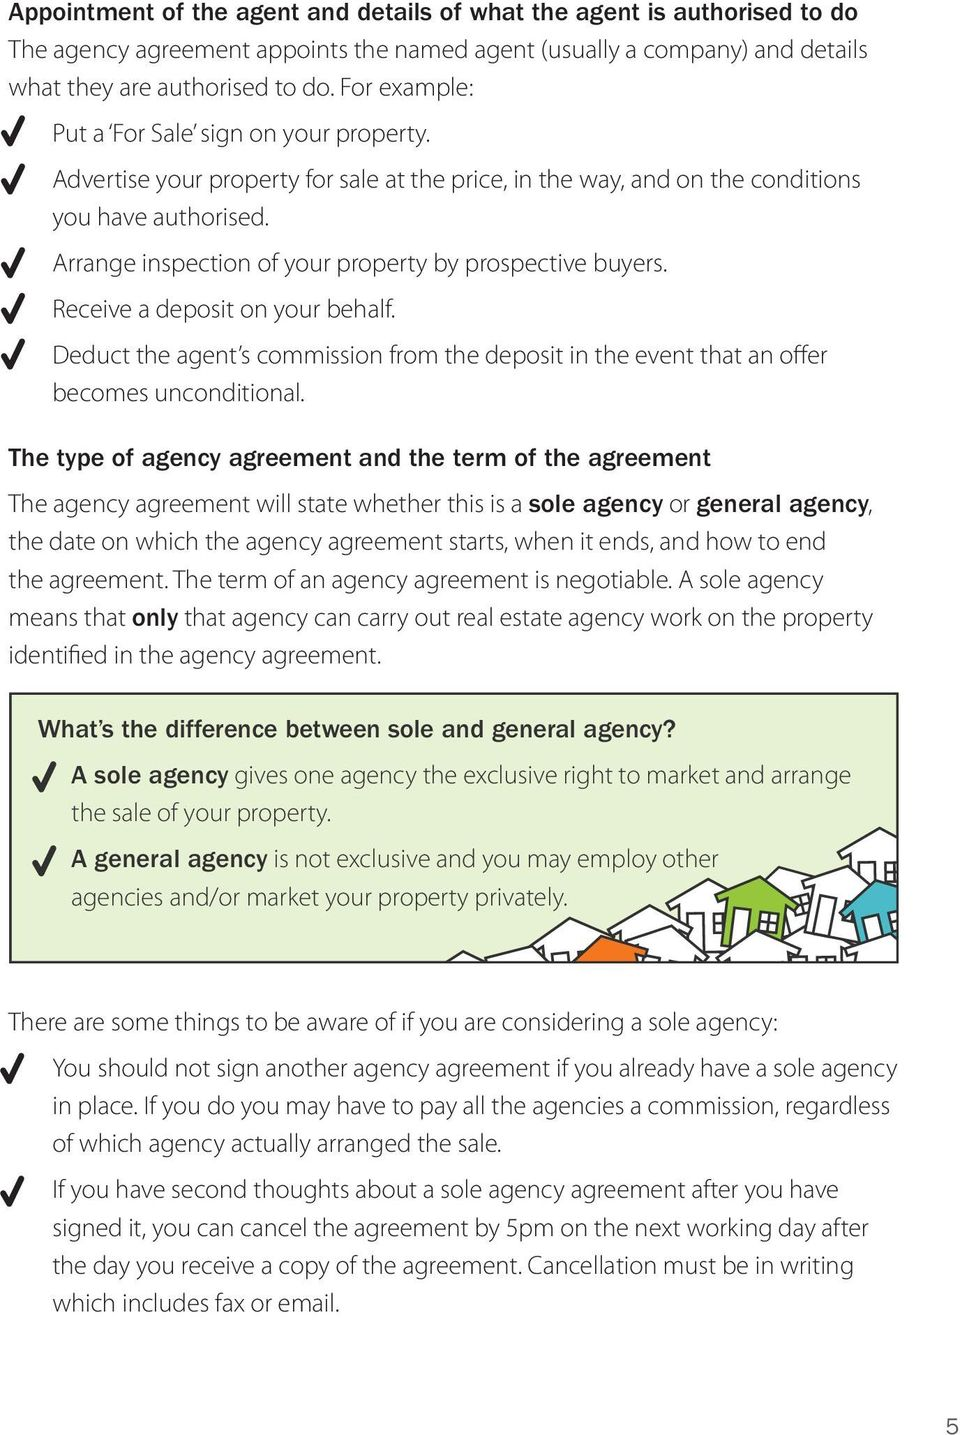 New Zealand Residential Property Agency Agreement Guide This Guide